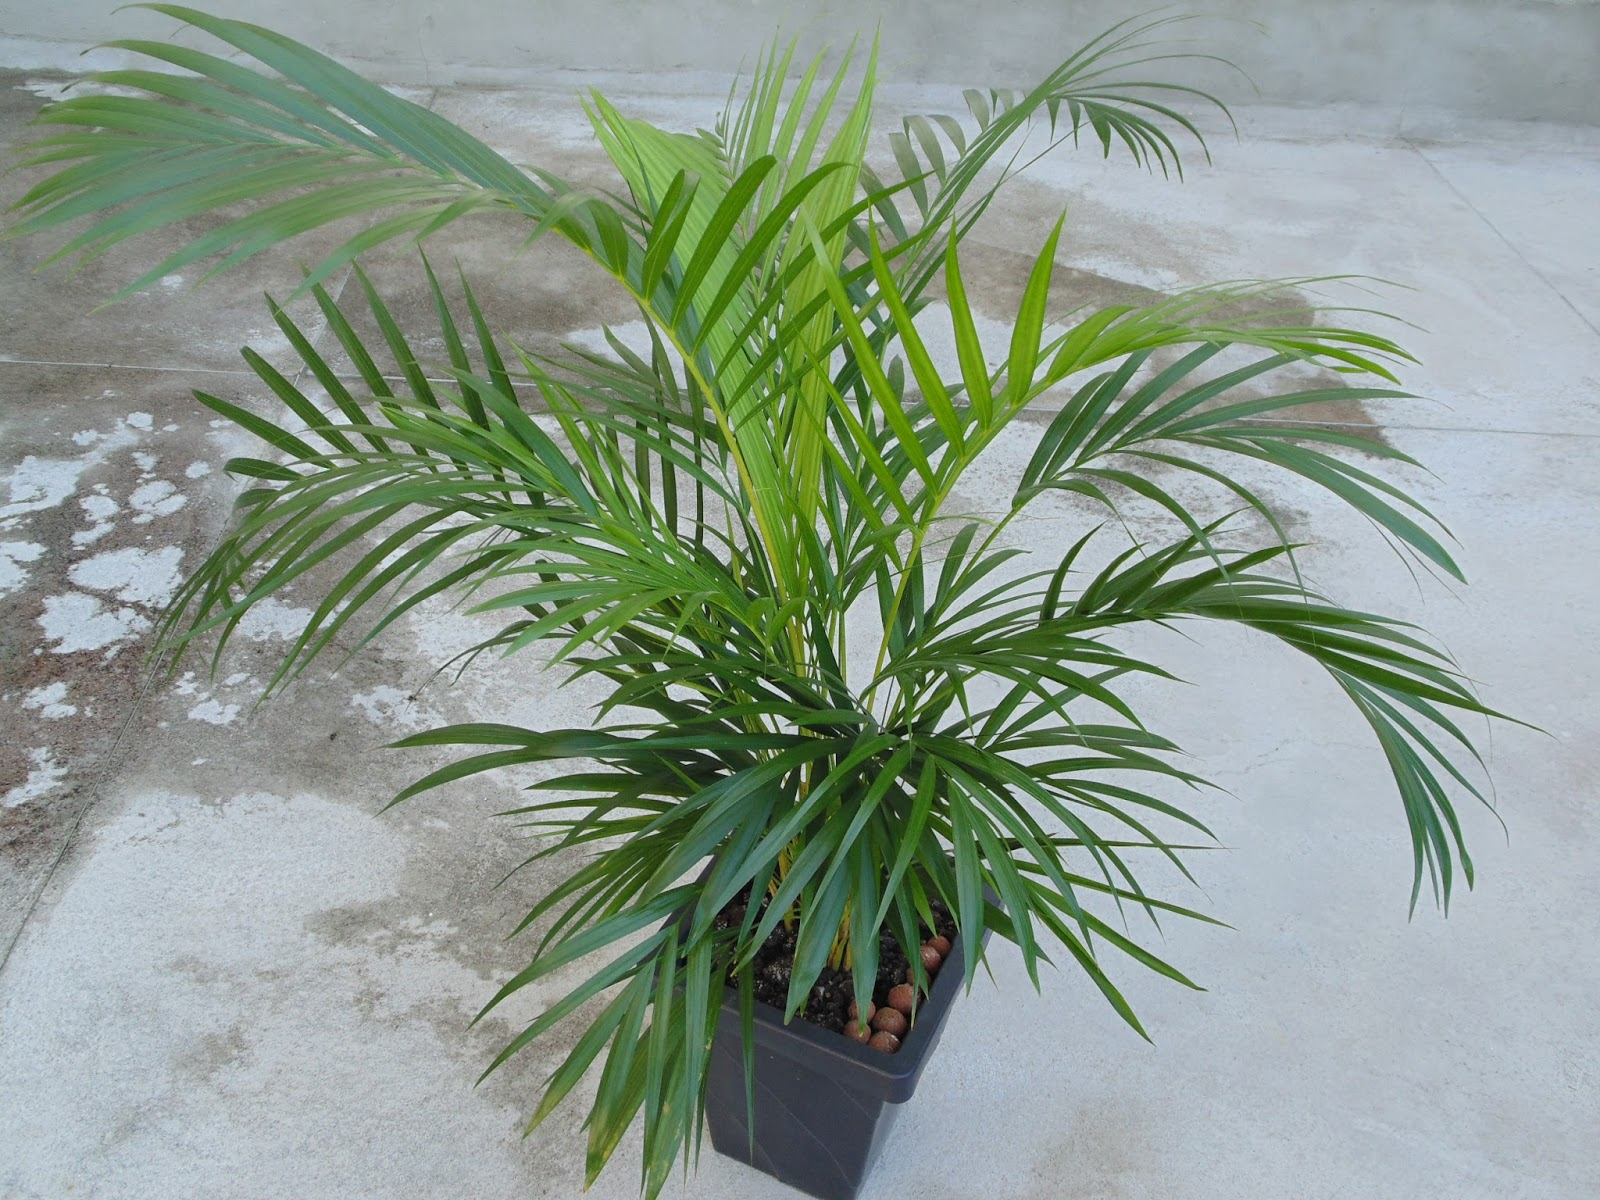 Yellow Palm Areca Palm Chrysalidocarpus Lutescens Which Is The Right Plant For Your Room Healthinasecond